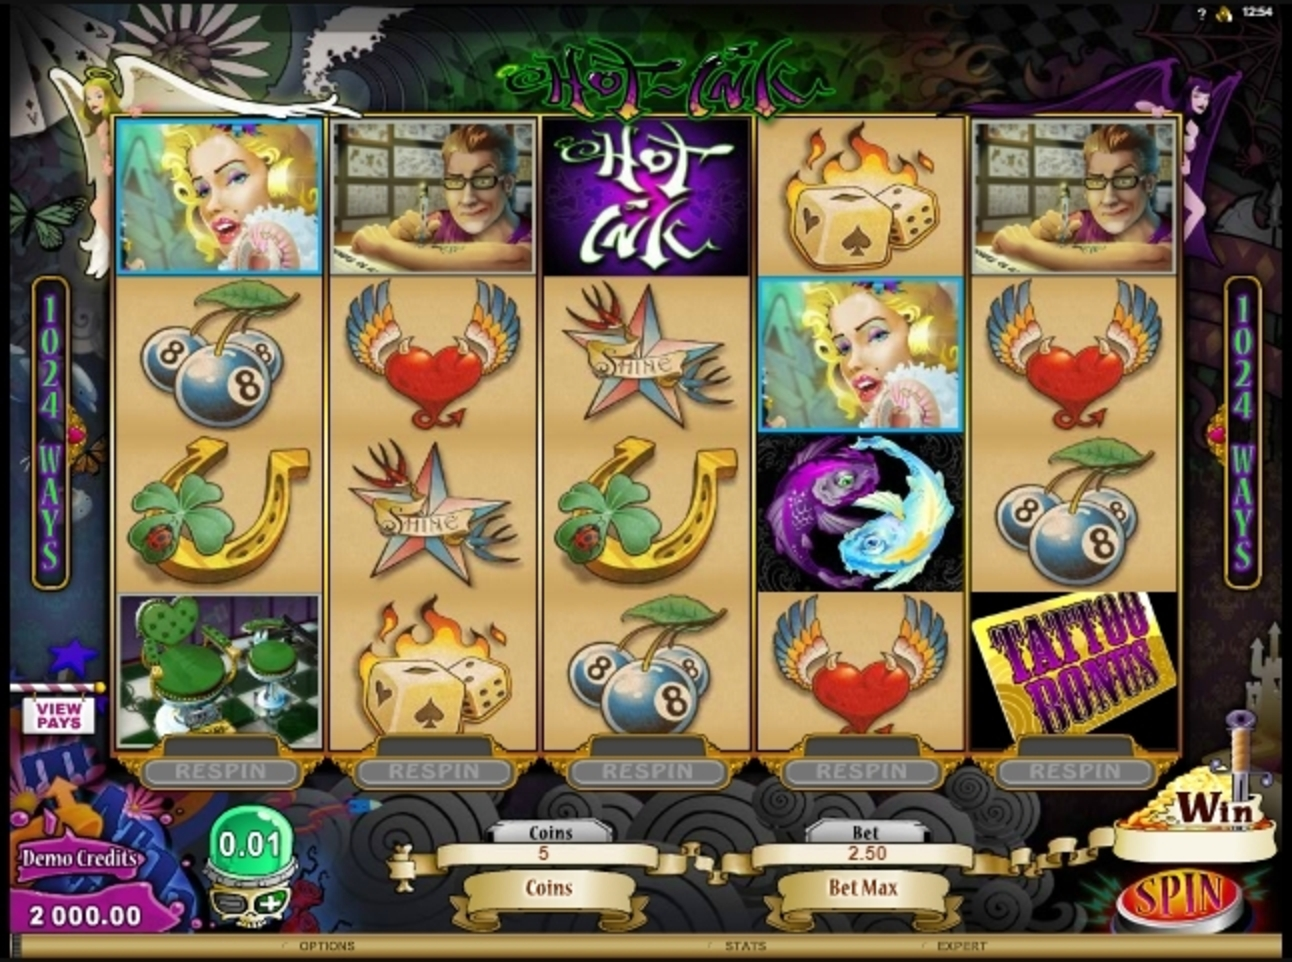 Reels in Hot Ink Slot Game by Microgaming